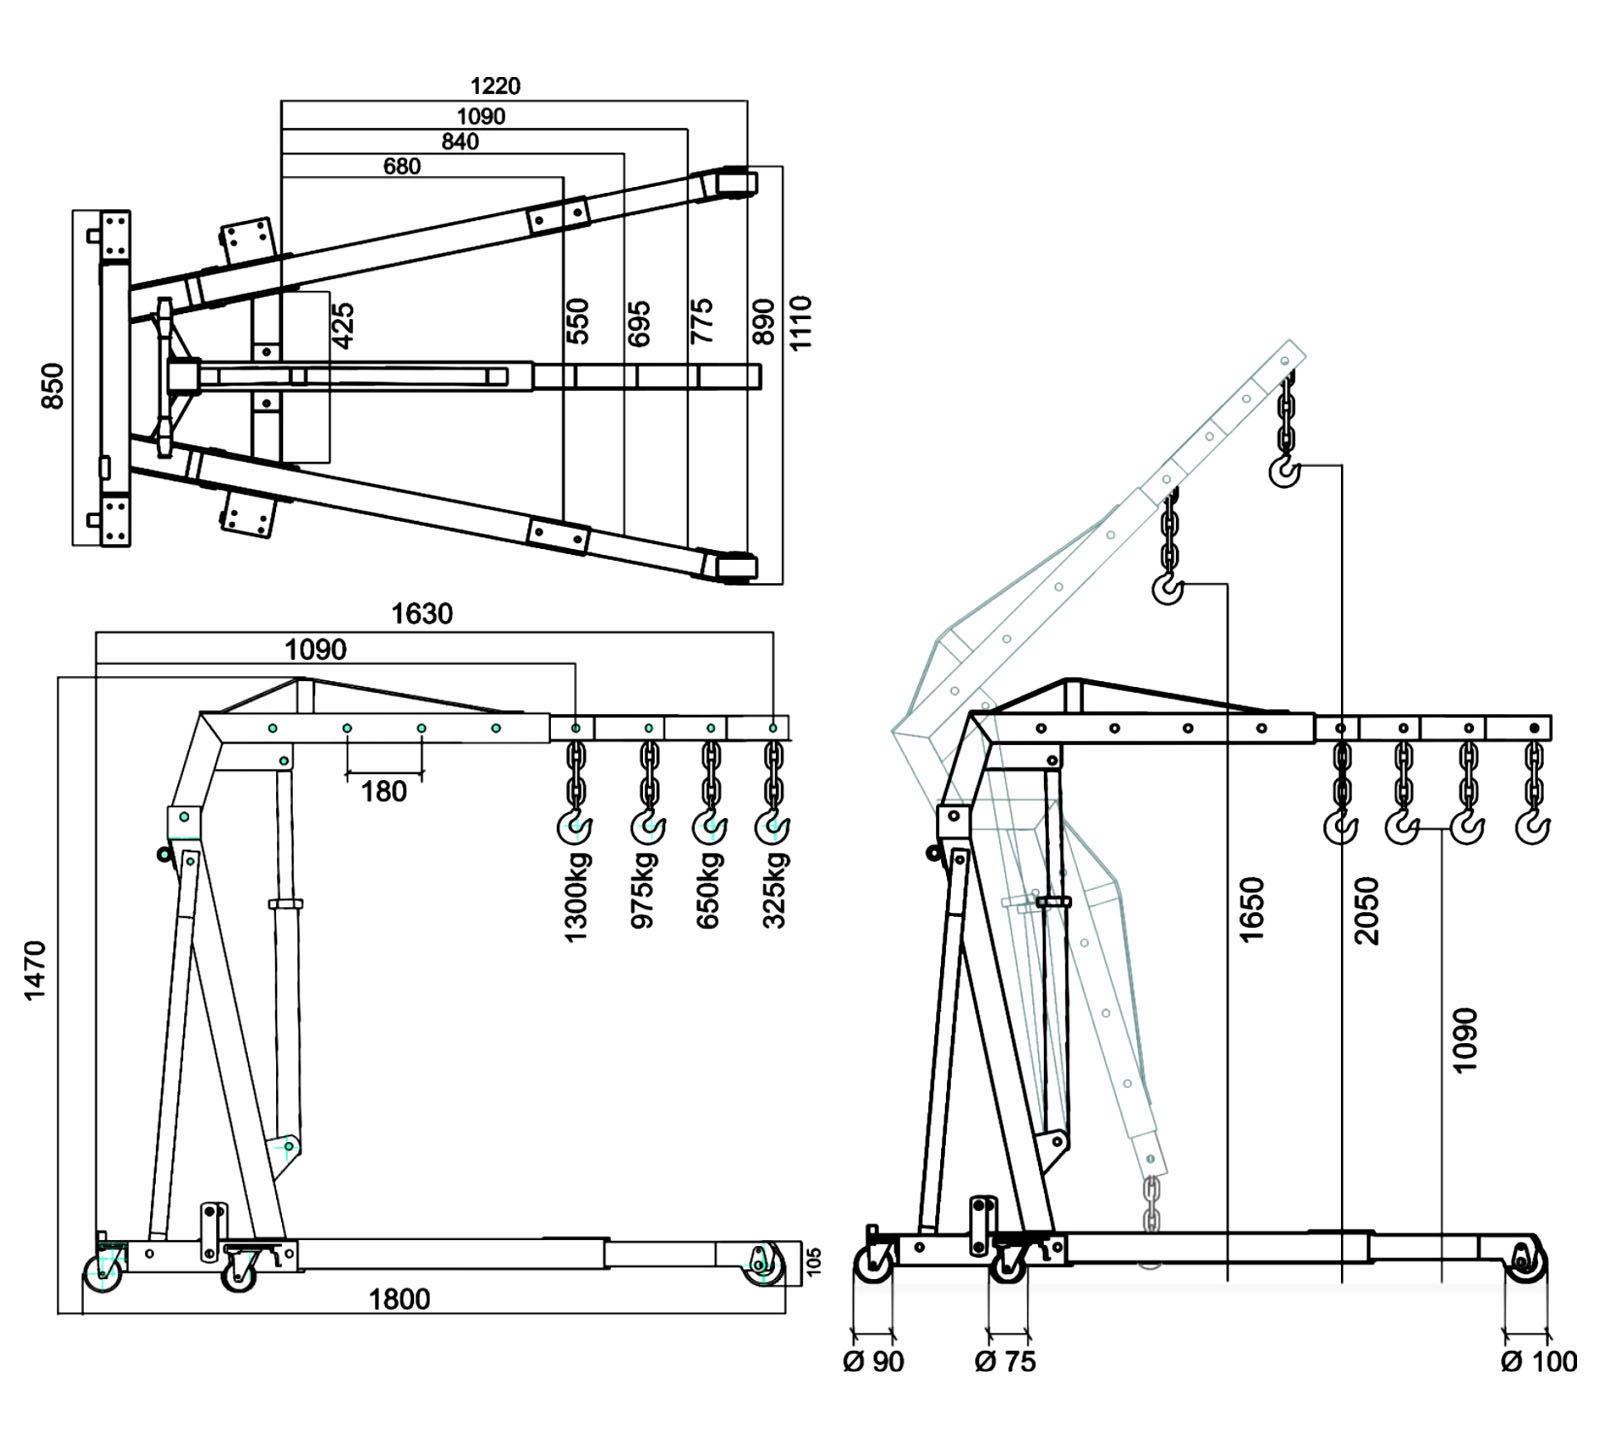 2 Sd Hoist Wiring Diagram Electric Pallet Jack Diagram